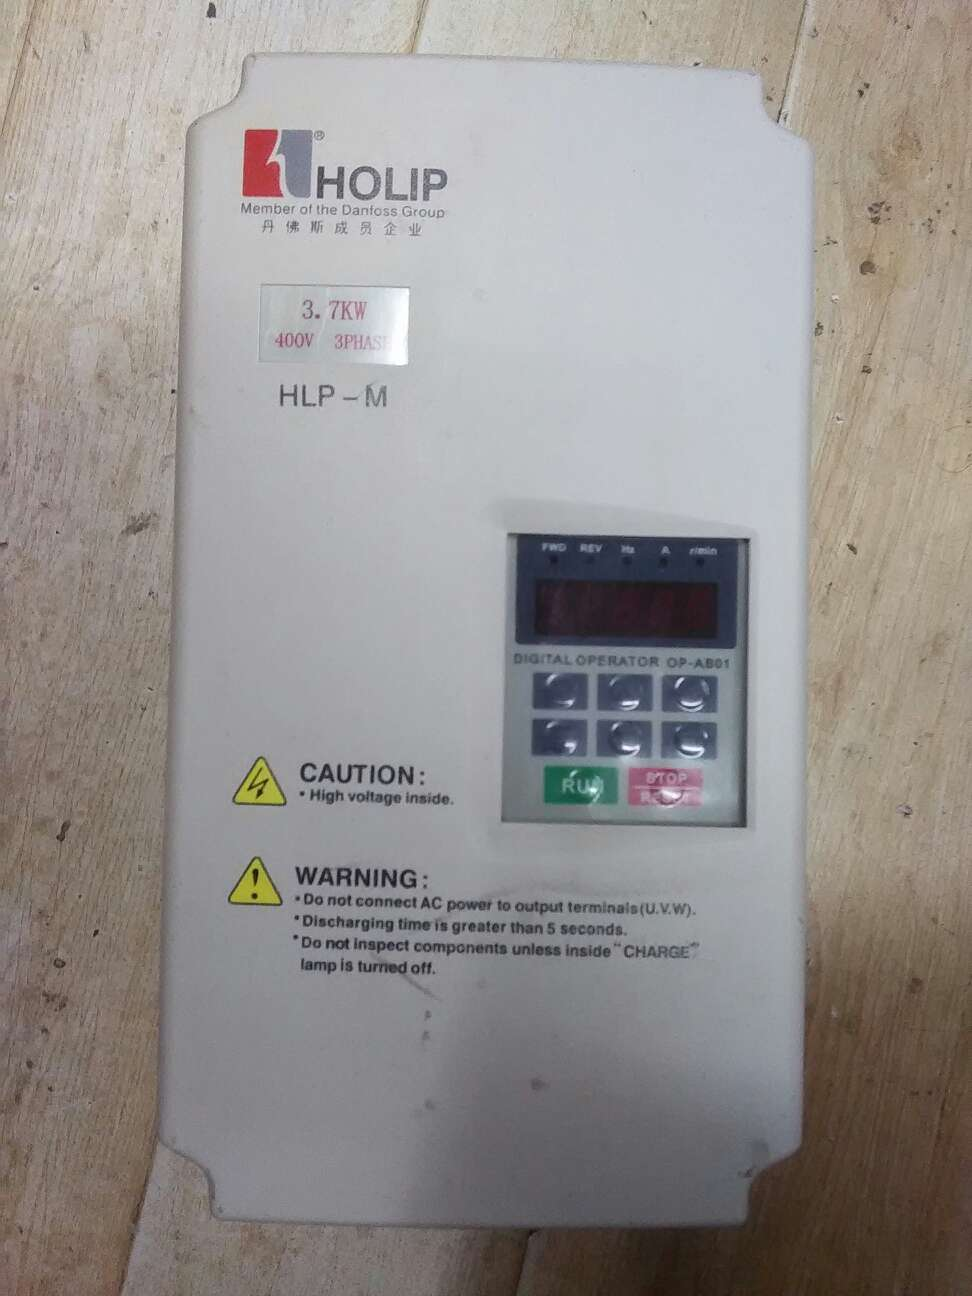 medium resolution of vfd holip hlp m03d743b grinder inverter 3 7kw 4kw three phase motor speed controller 380v igbt in inverters converters from home improvement on